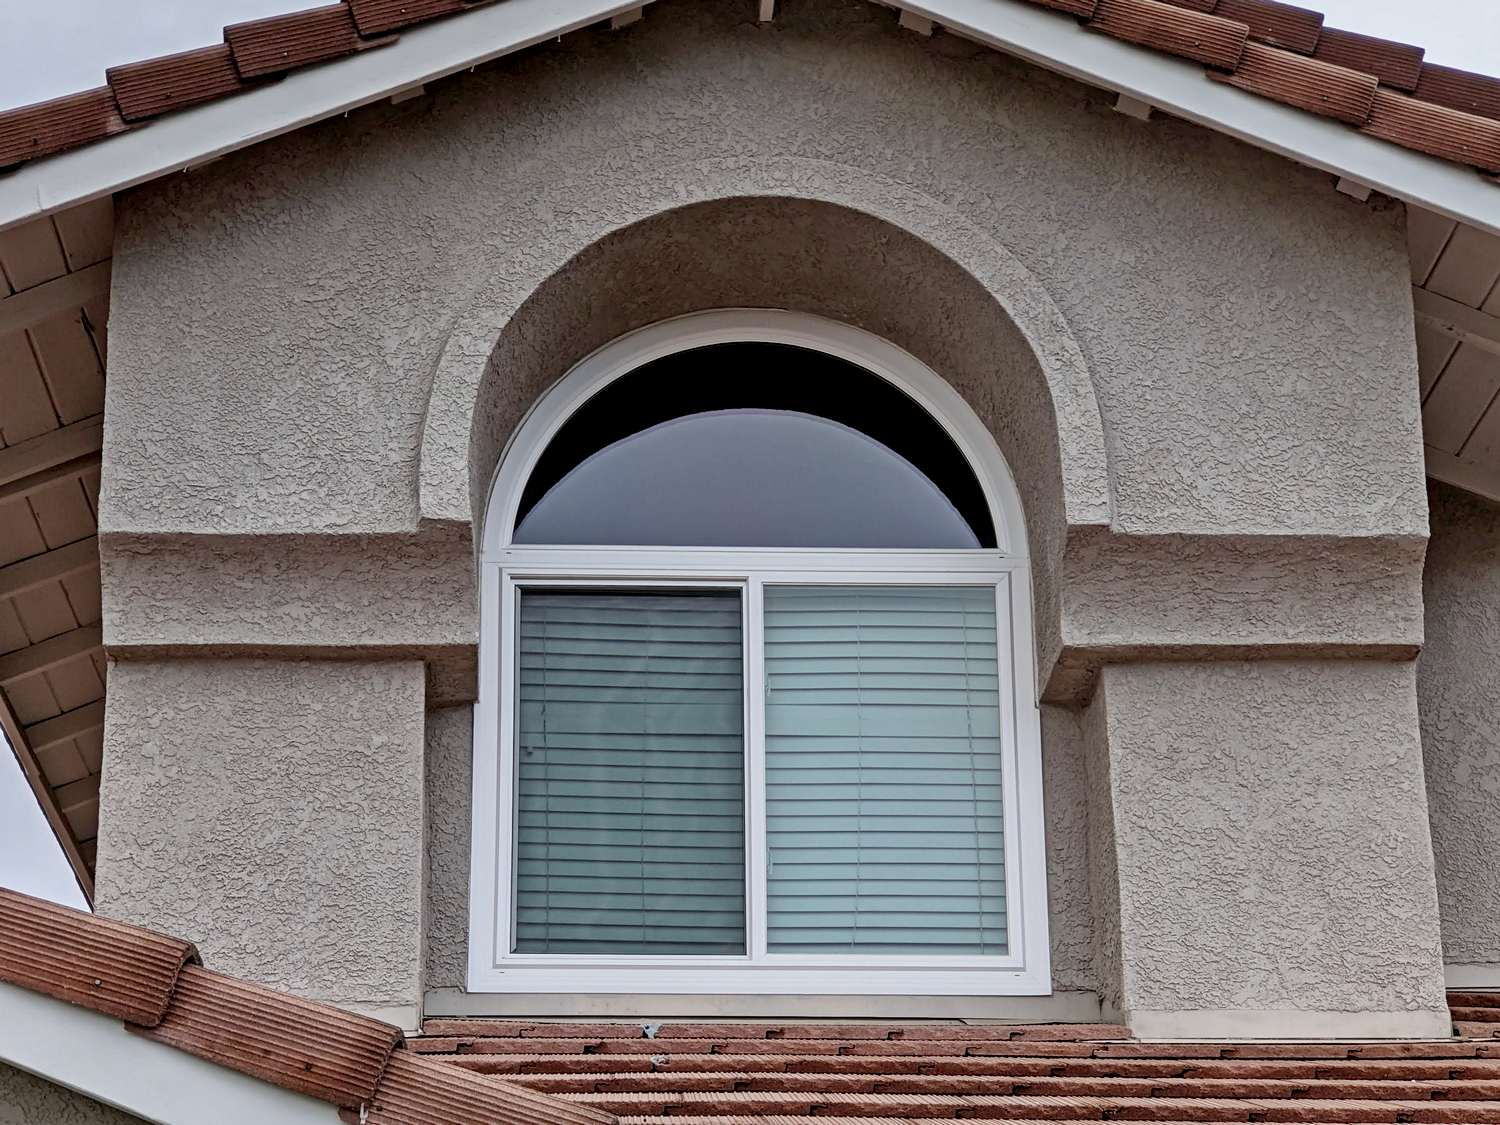 Window Replacement Project in Rancho Cucamonga, CA